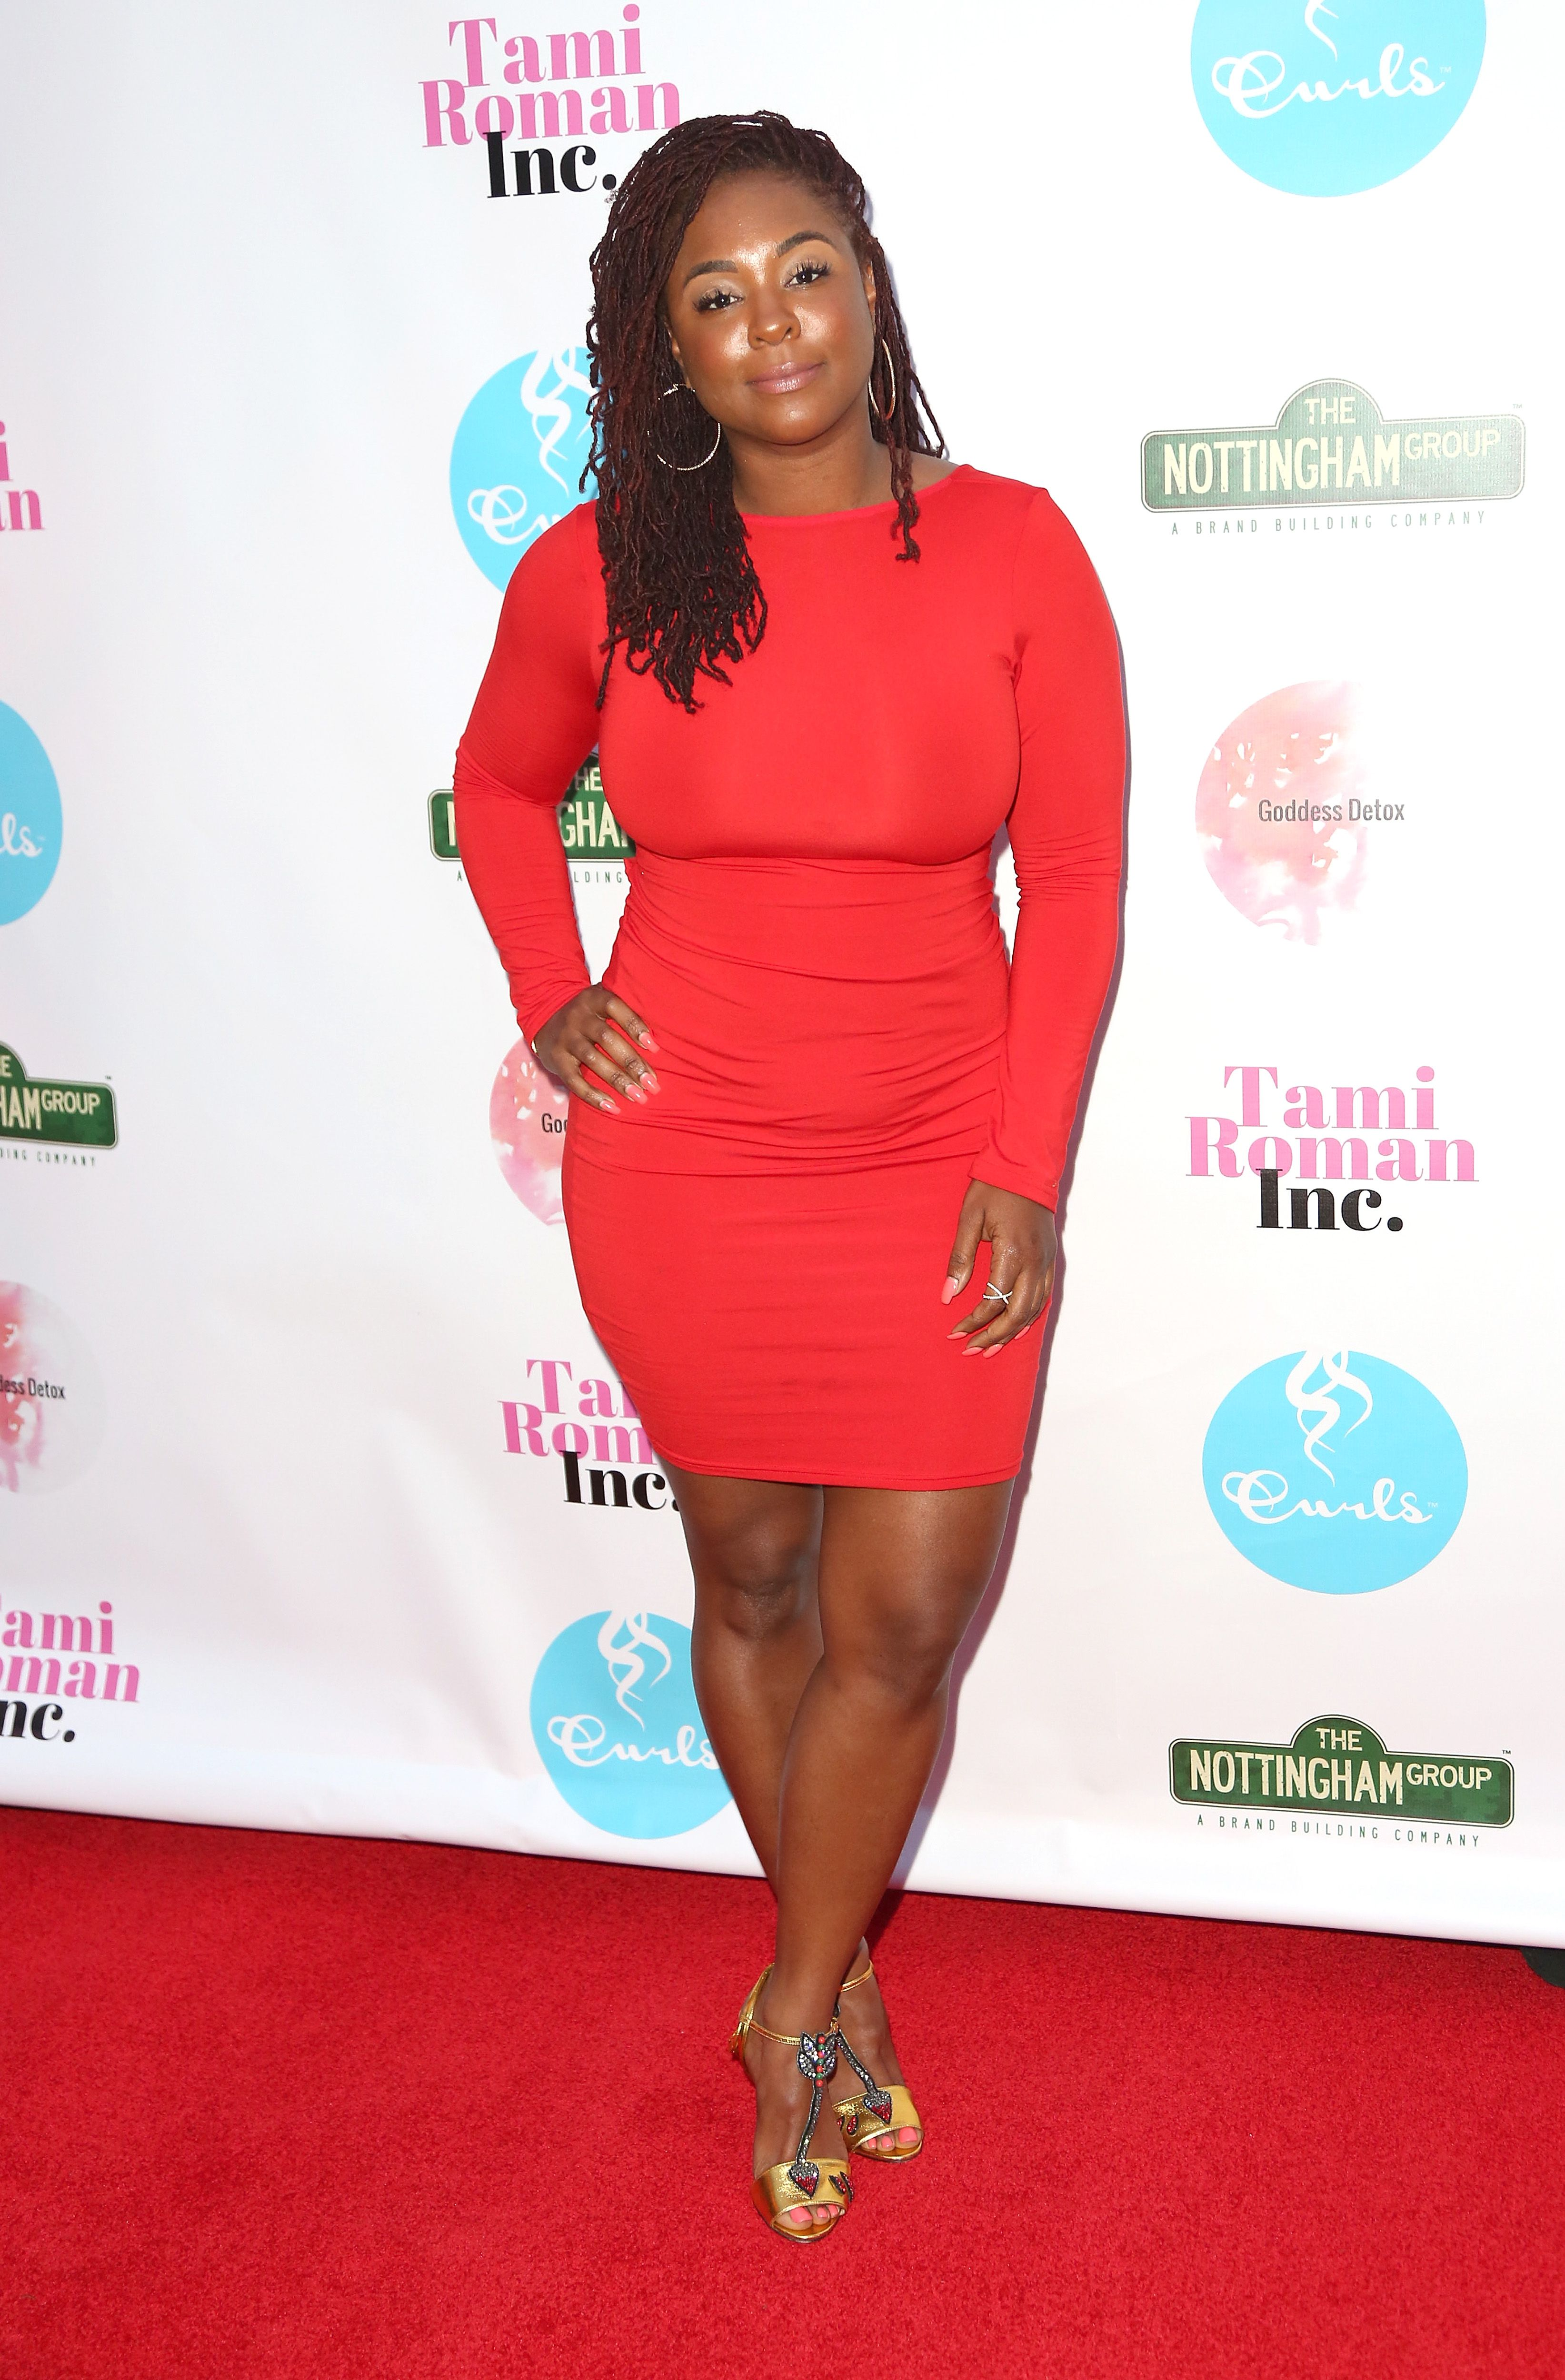 Torrei Hart during the Women of Influence Dinner at Xen Lounge on May 15, 2017 in Studio City, California. | Source: Getty Images